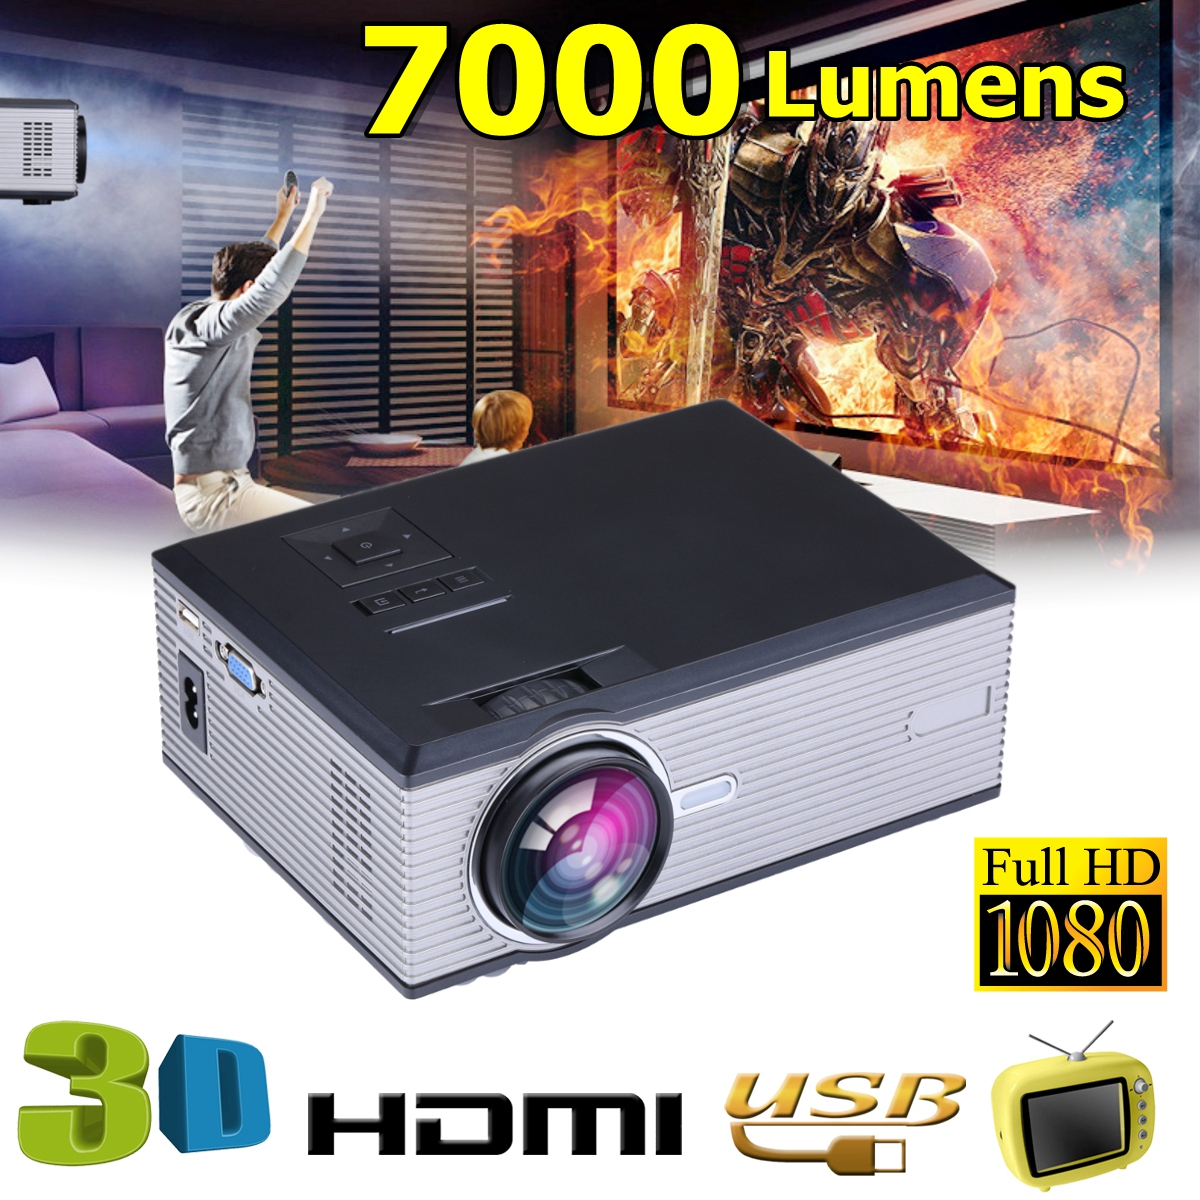 1080P LED Video Projector for Home Theater7000Lumensupport Full HD Mini projector HDMI/USB/SD/AV/VGA HOME CINEMA poner saund dlp100w pocket hd portable dlp projector micro wireless multi screen mini led battery hdmi usb portable home cinema